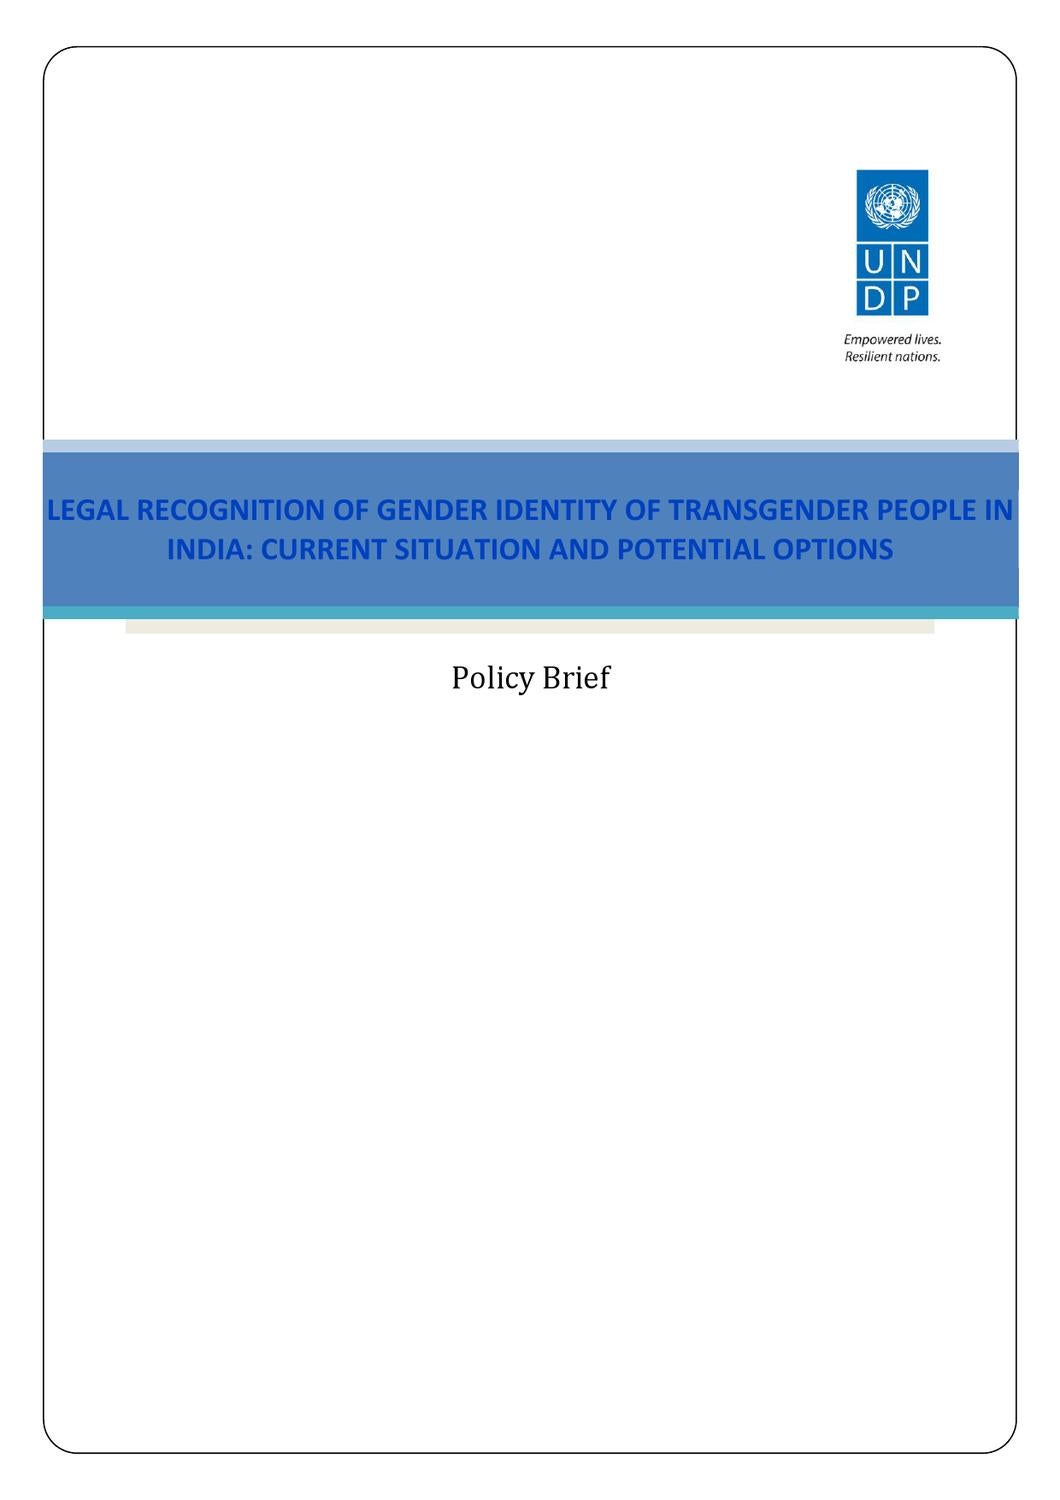 Legal Recognition of Gender Identity of Transgender People in India by United Nations Development Programme - issuu